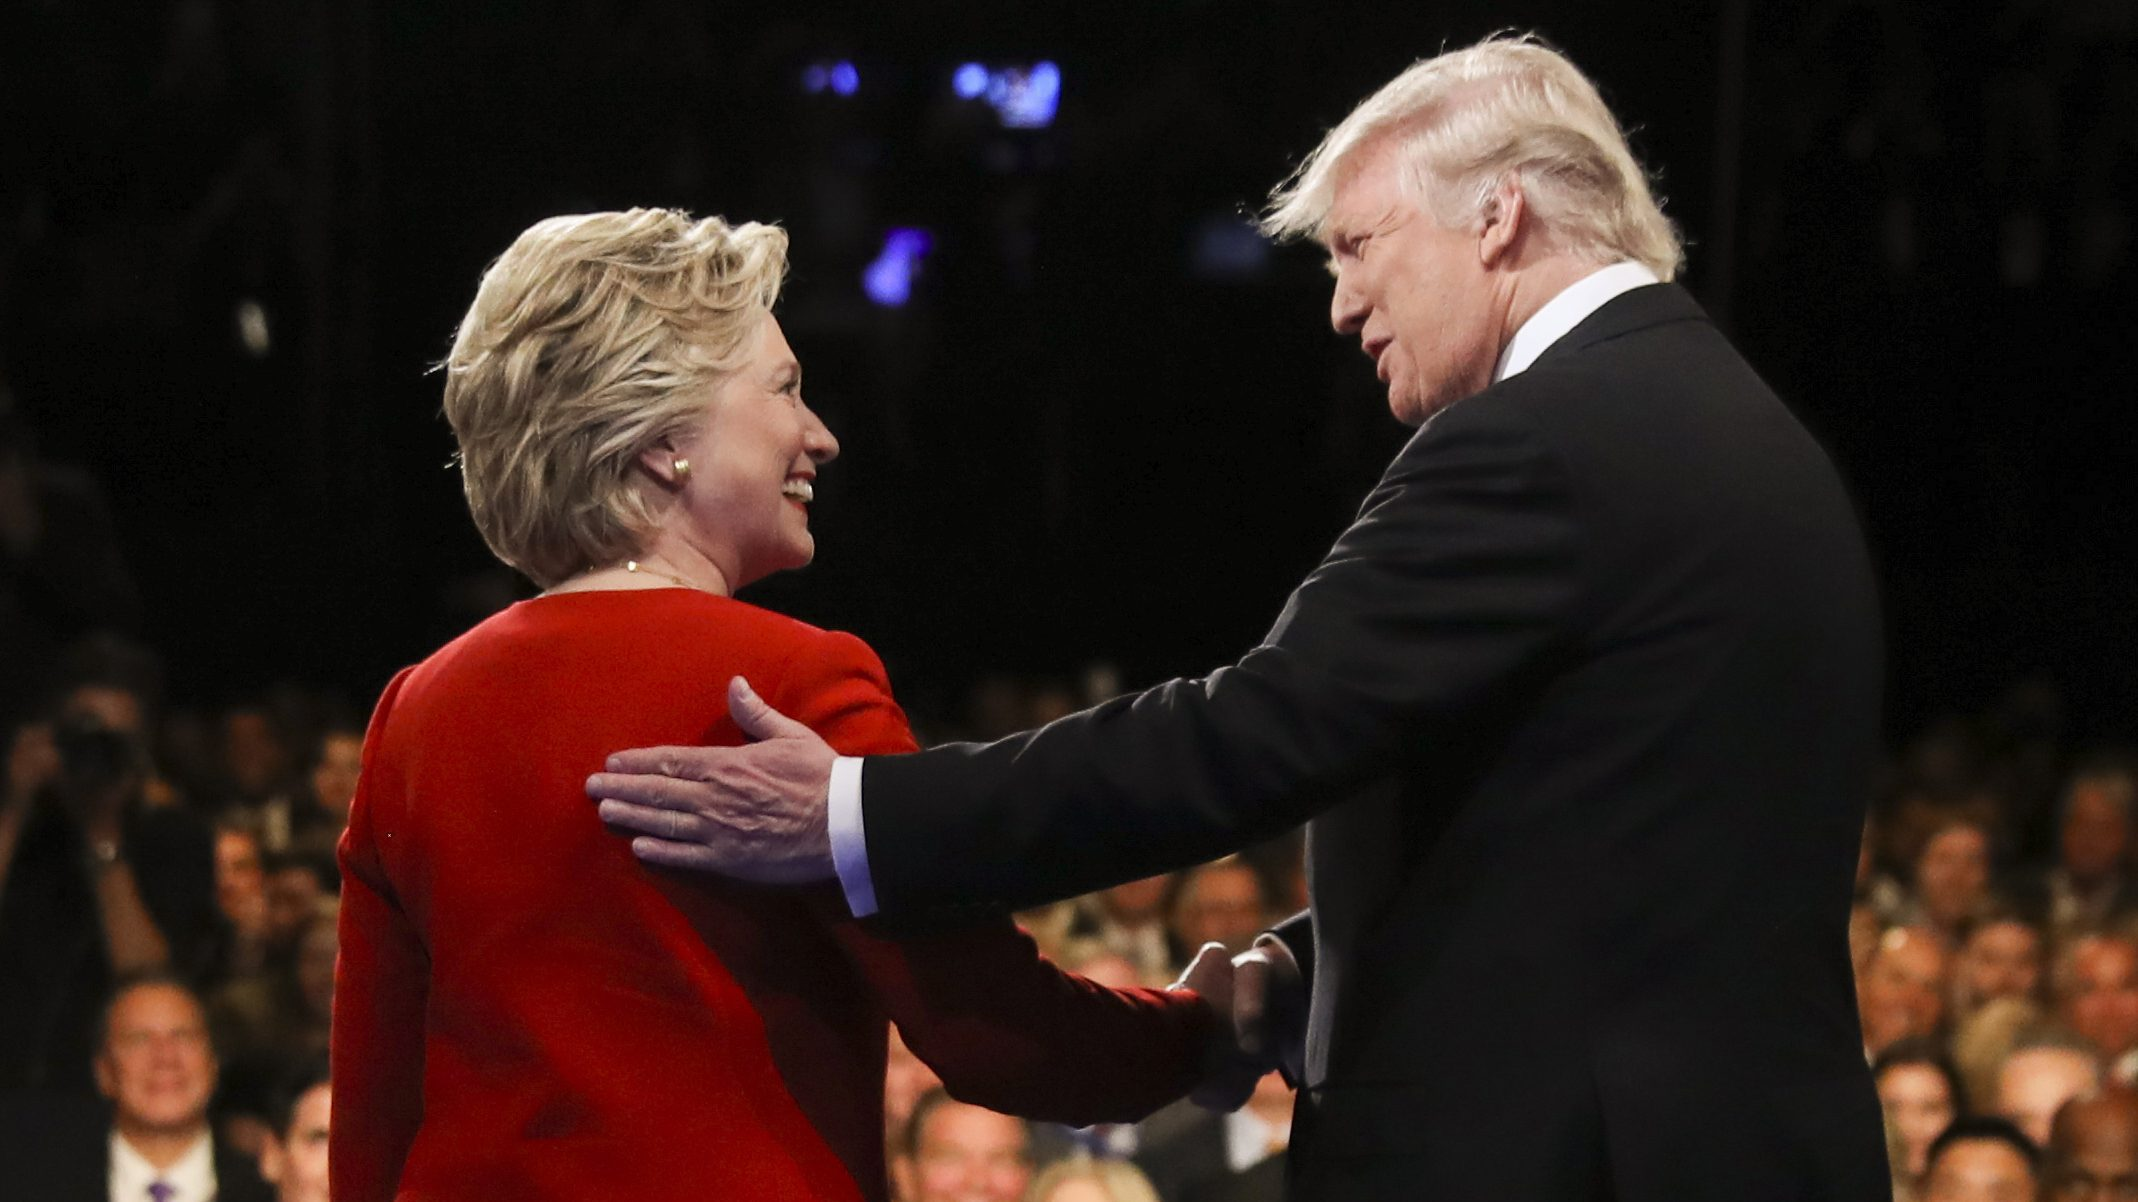 Democratic presidential nominee Hillary Clinton and Republican presidential nominee Donald Trump shake hands during the presidential debate at Hofstra University in Hempstead, N.Y. For presidential candidates, the town hall debate is a test of stagecraft as much as substance. When Hillary Clinton and Donald Trump meet in the Sunday, Oct.9, 2016, contest, they'll be fielding questions from undecided voters seated nearby. In an added dose of unpredictability, the format allows the candidates to move around the stage, putting them in unusually close proximity to each other.